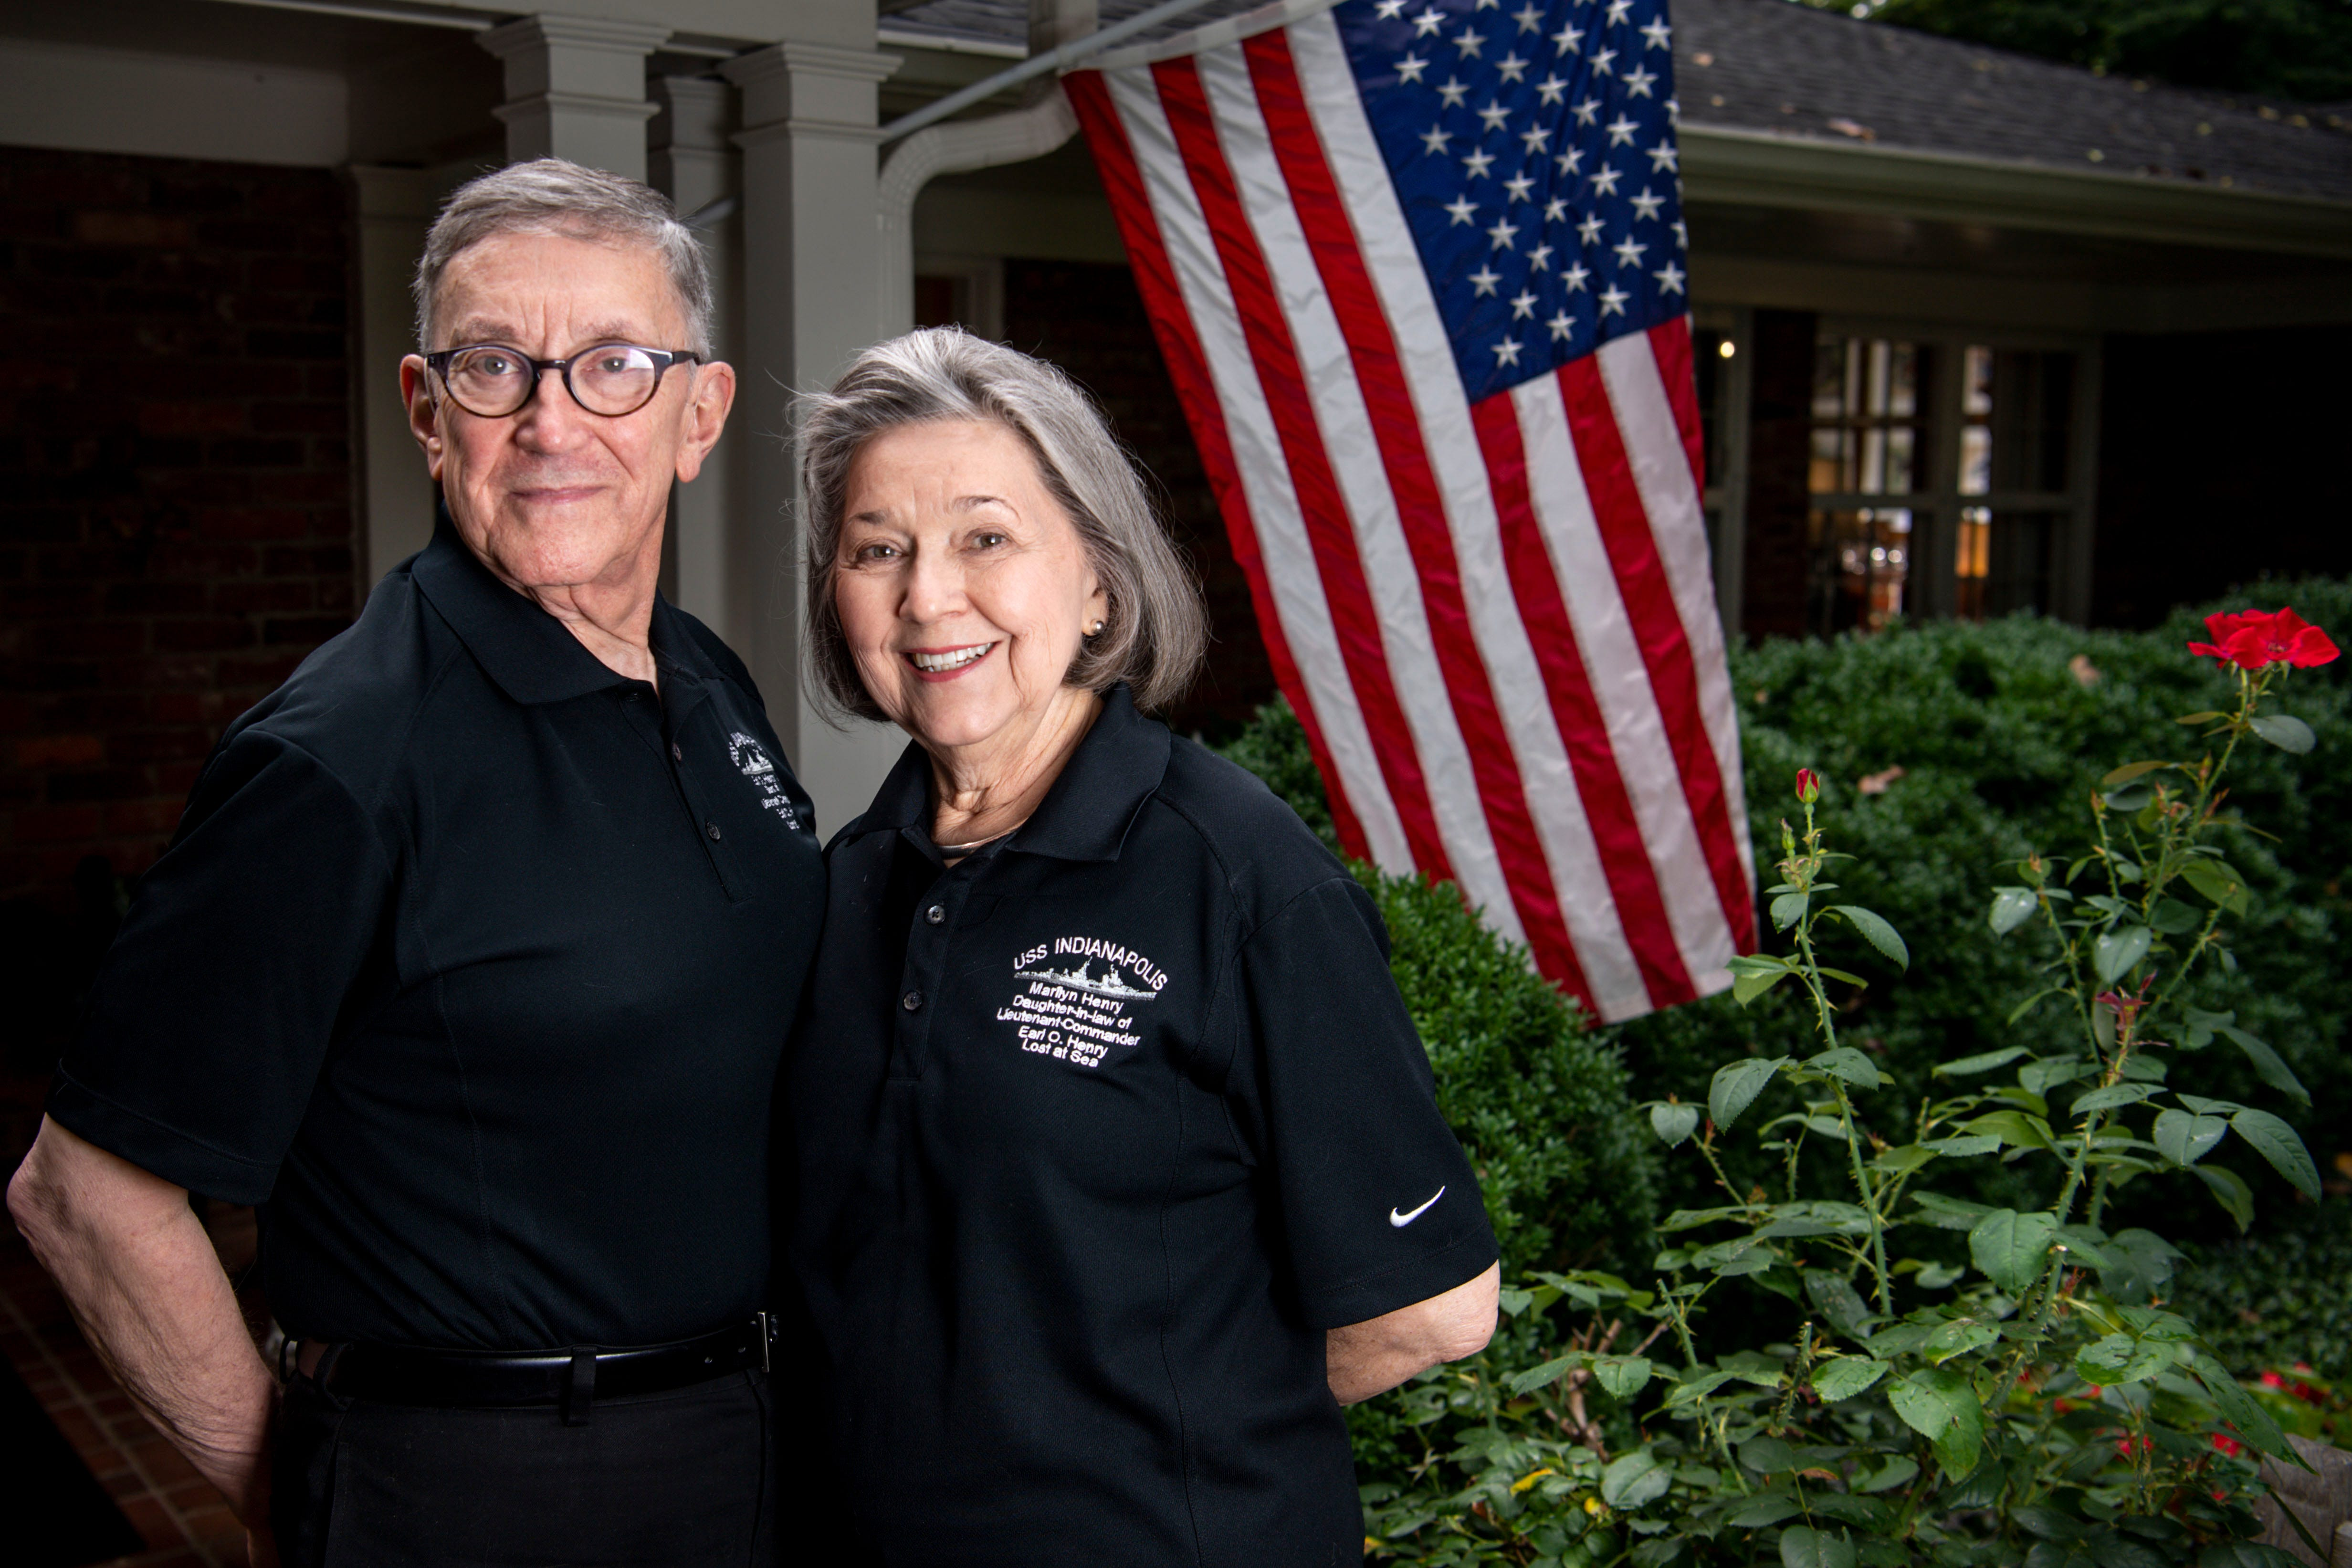 Earl Henry, Jr., and Marilyn Henry are pictured outside their home in Belle Meade, Tenn., on Monday, July 19, 2021.